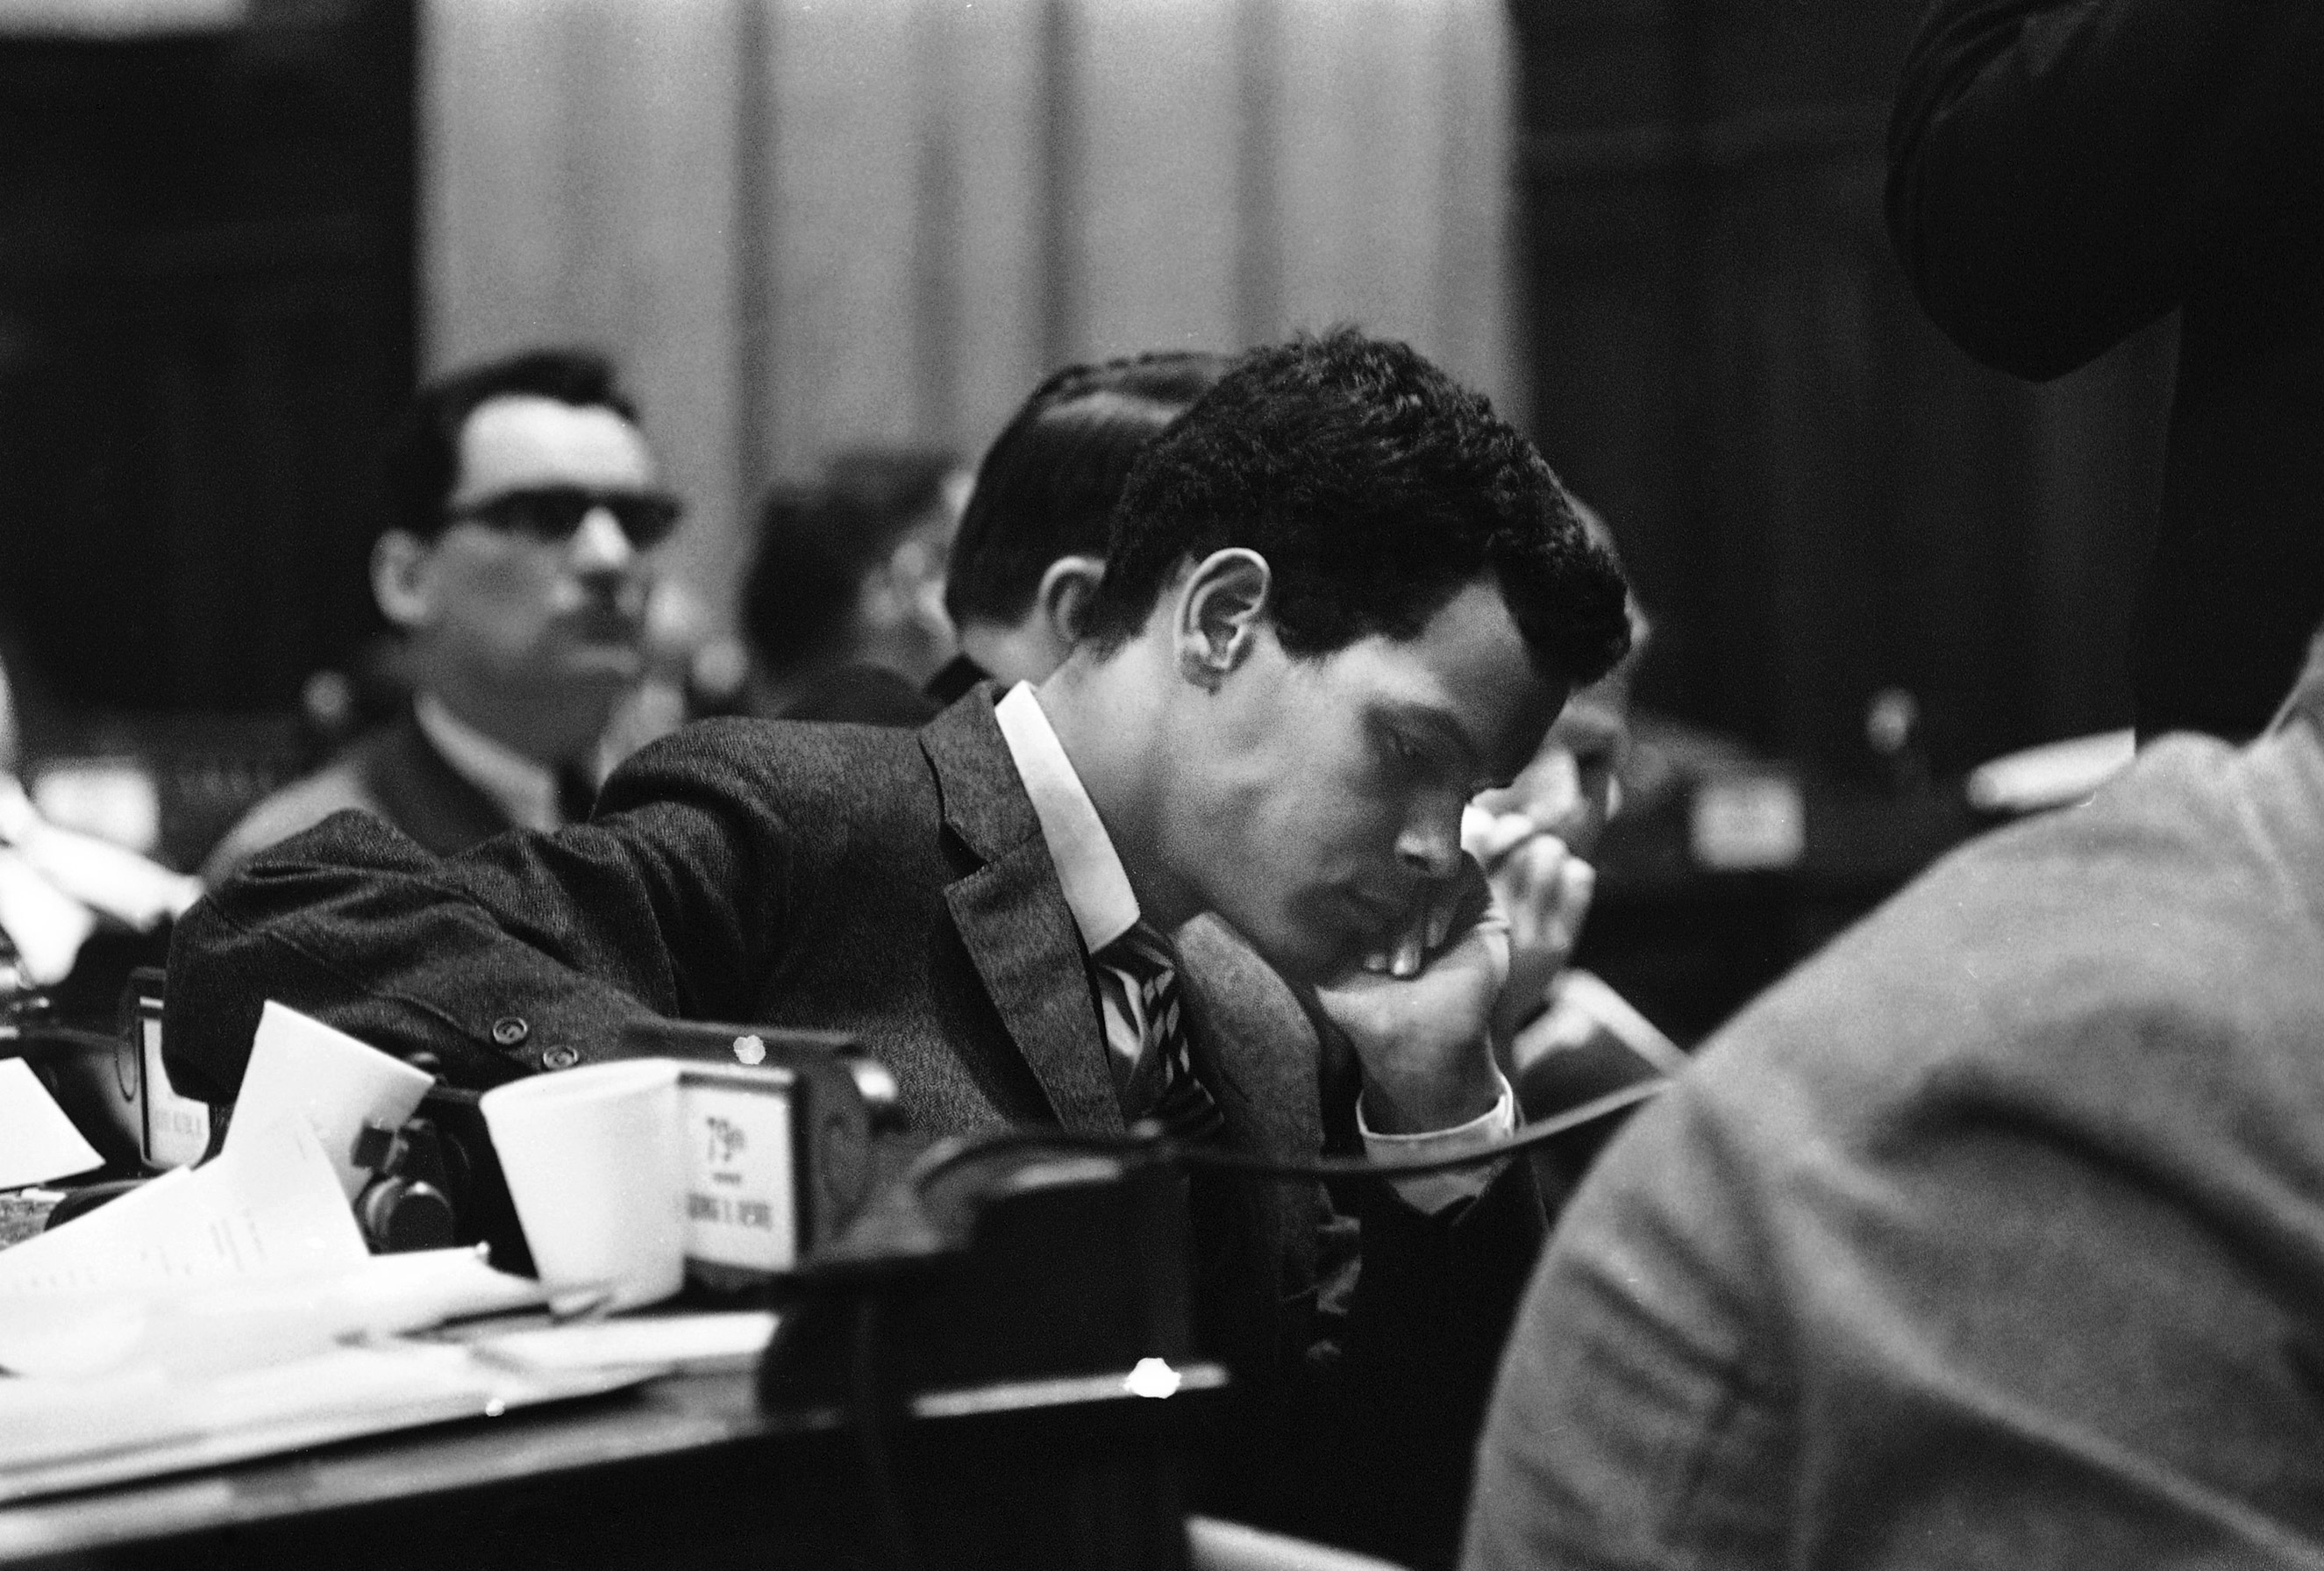 Representative elect Julian Bond listens to a verdict read to bar him from taking his seat in the Georgia House of Representatives in Atlanta on Jan. 11, 1966. He was refused his seat because of his endorsement of statements denouncing U.S. Policy in Vietnam.